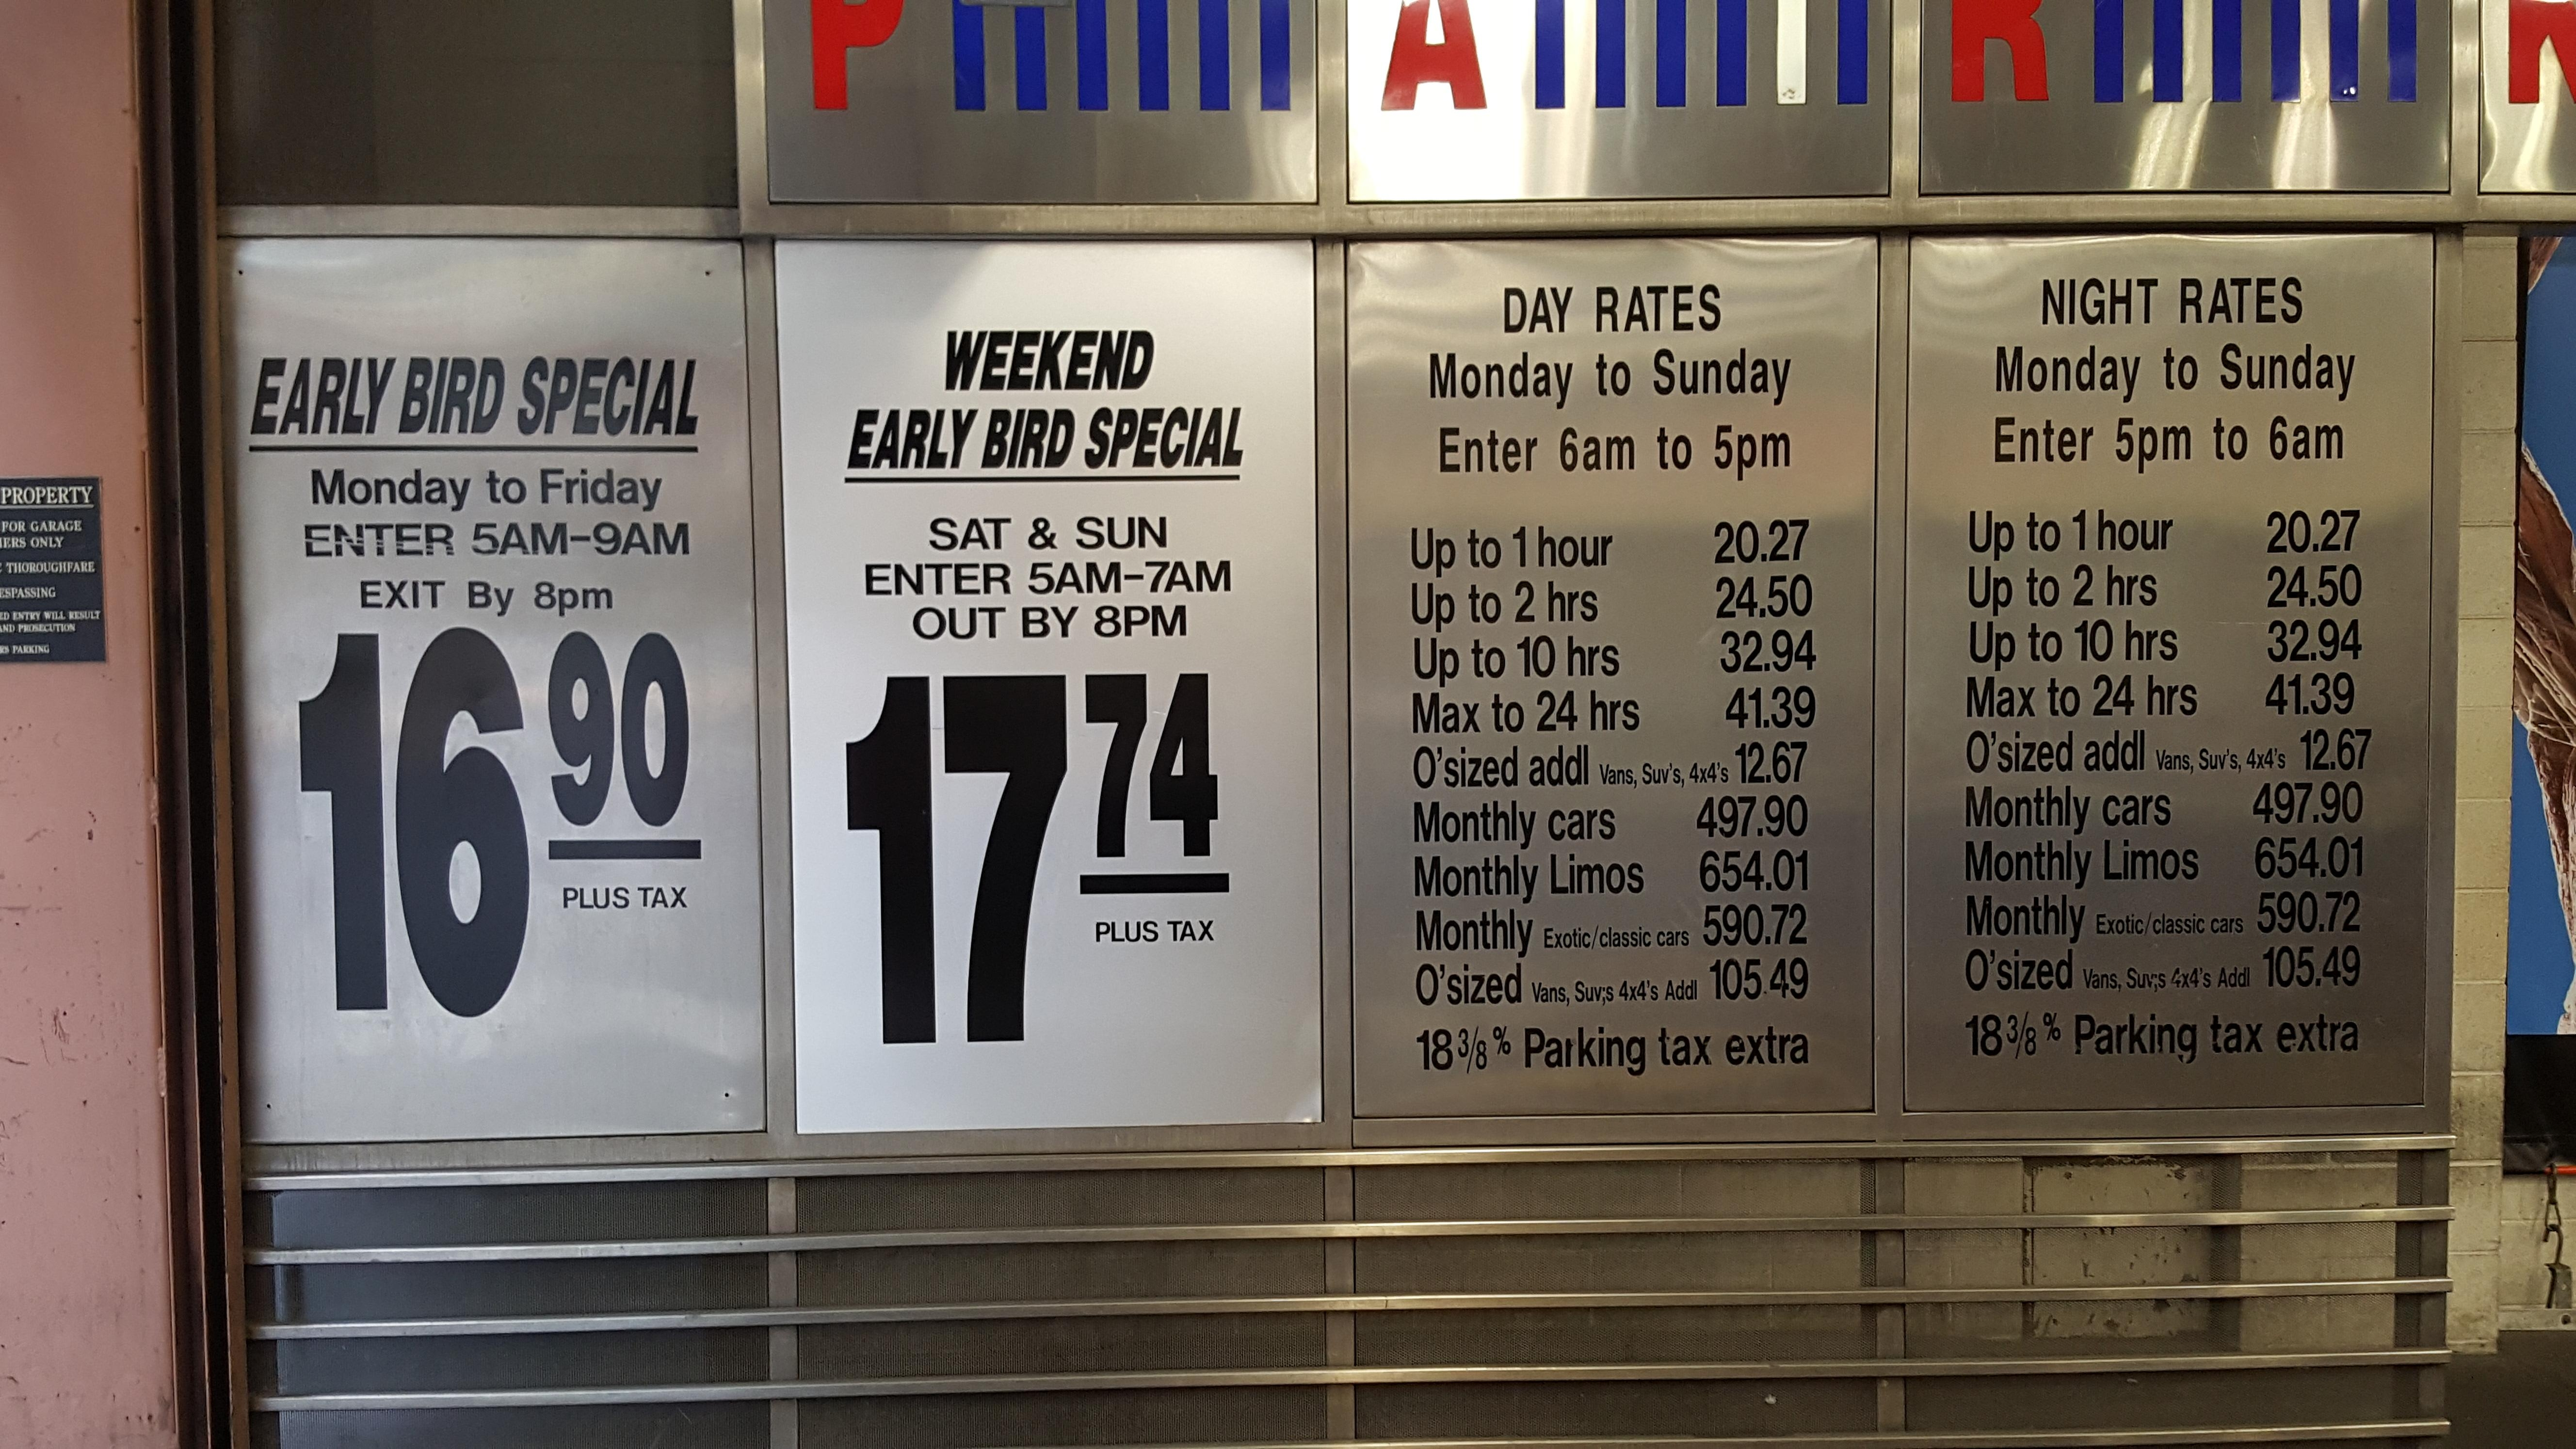 Nyc parking coupons times square